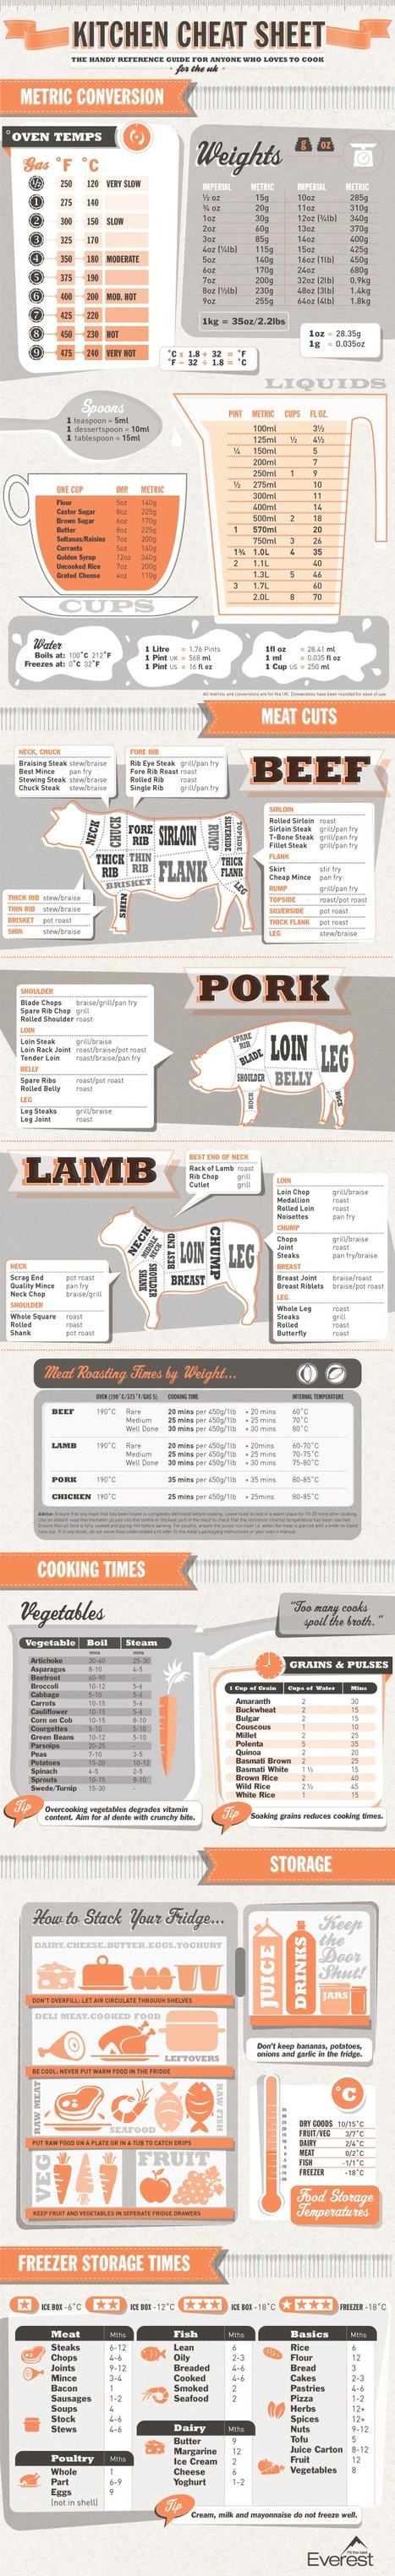 Kitchen Cheat Sheet | Visual.ly | The Rambling Epicure | Scoop.it